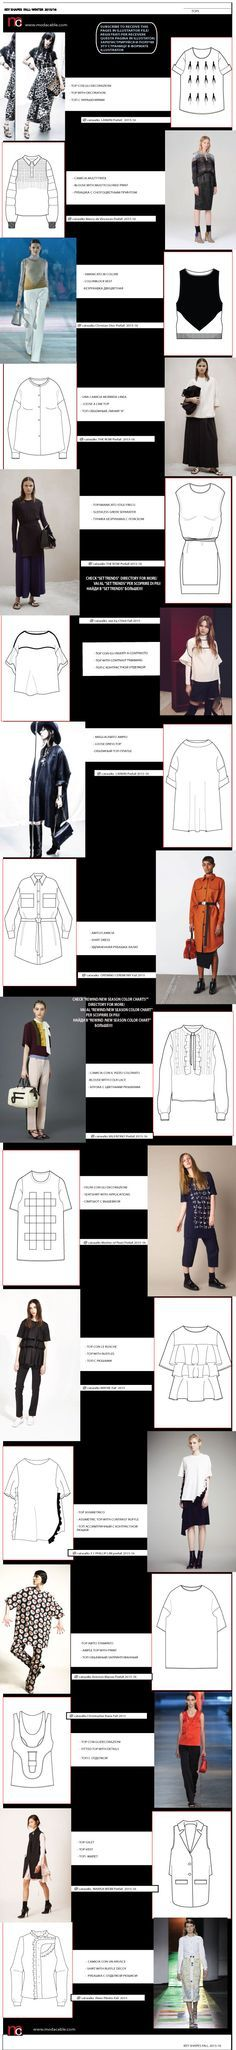 Key Shapes FW 2015-16 PopUp ModaCable.com